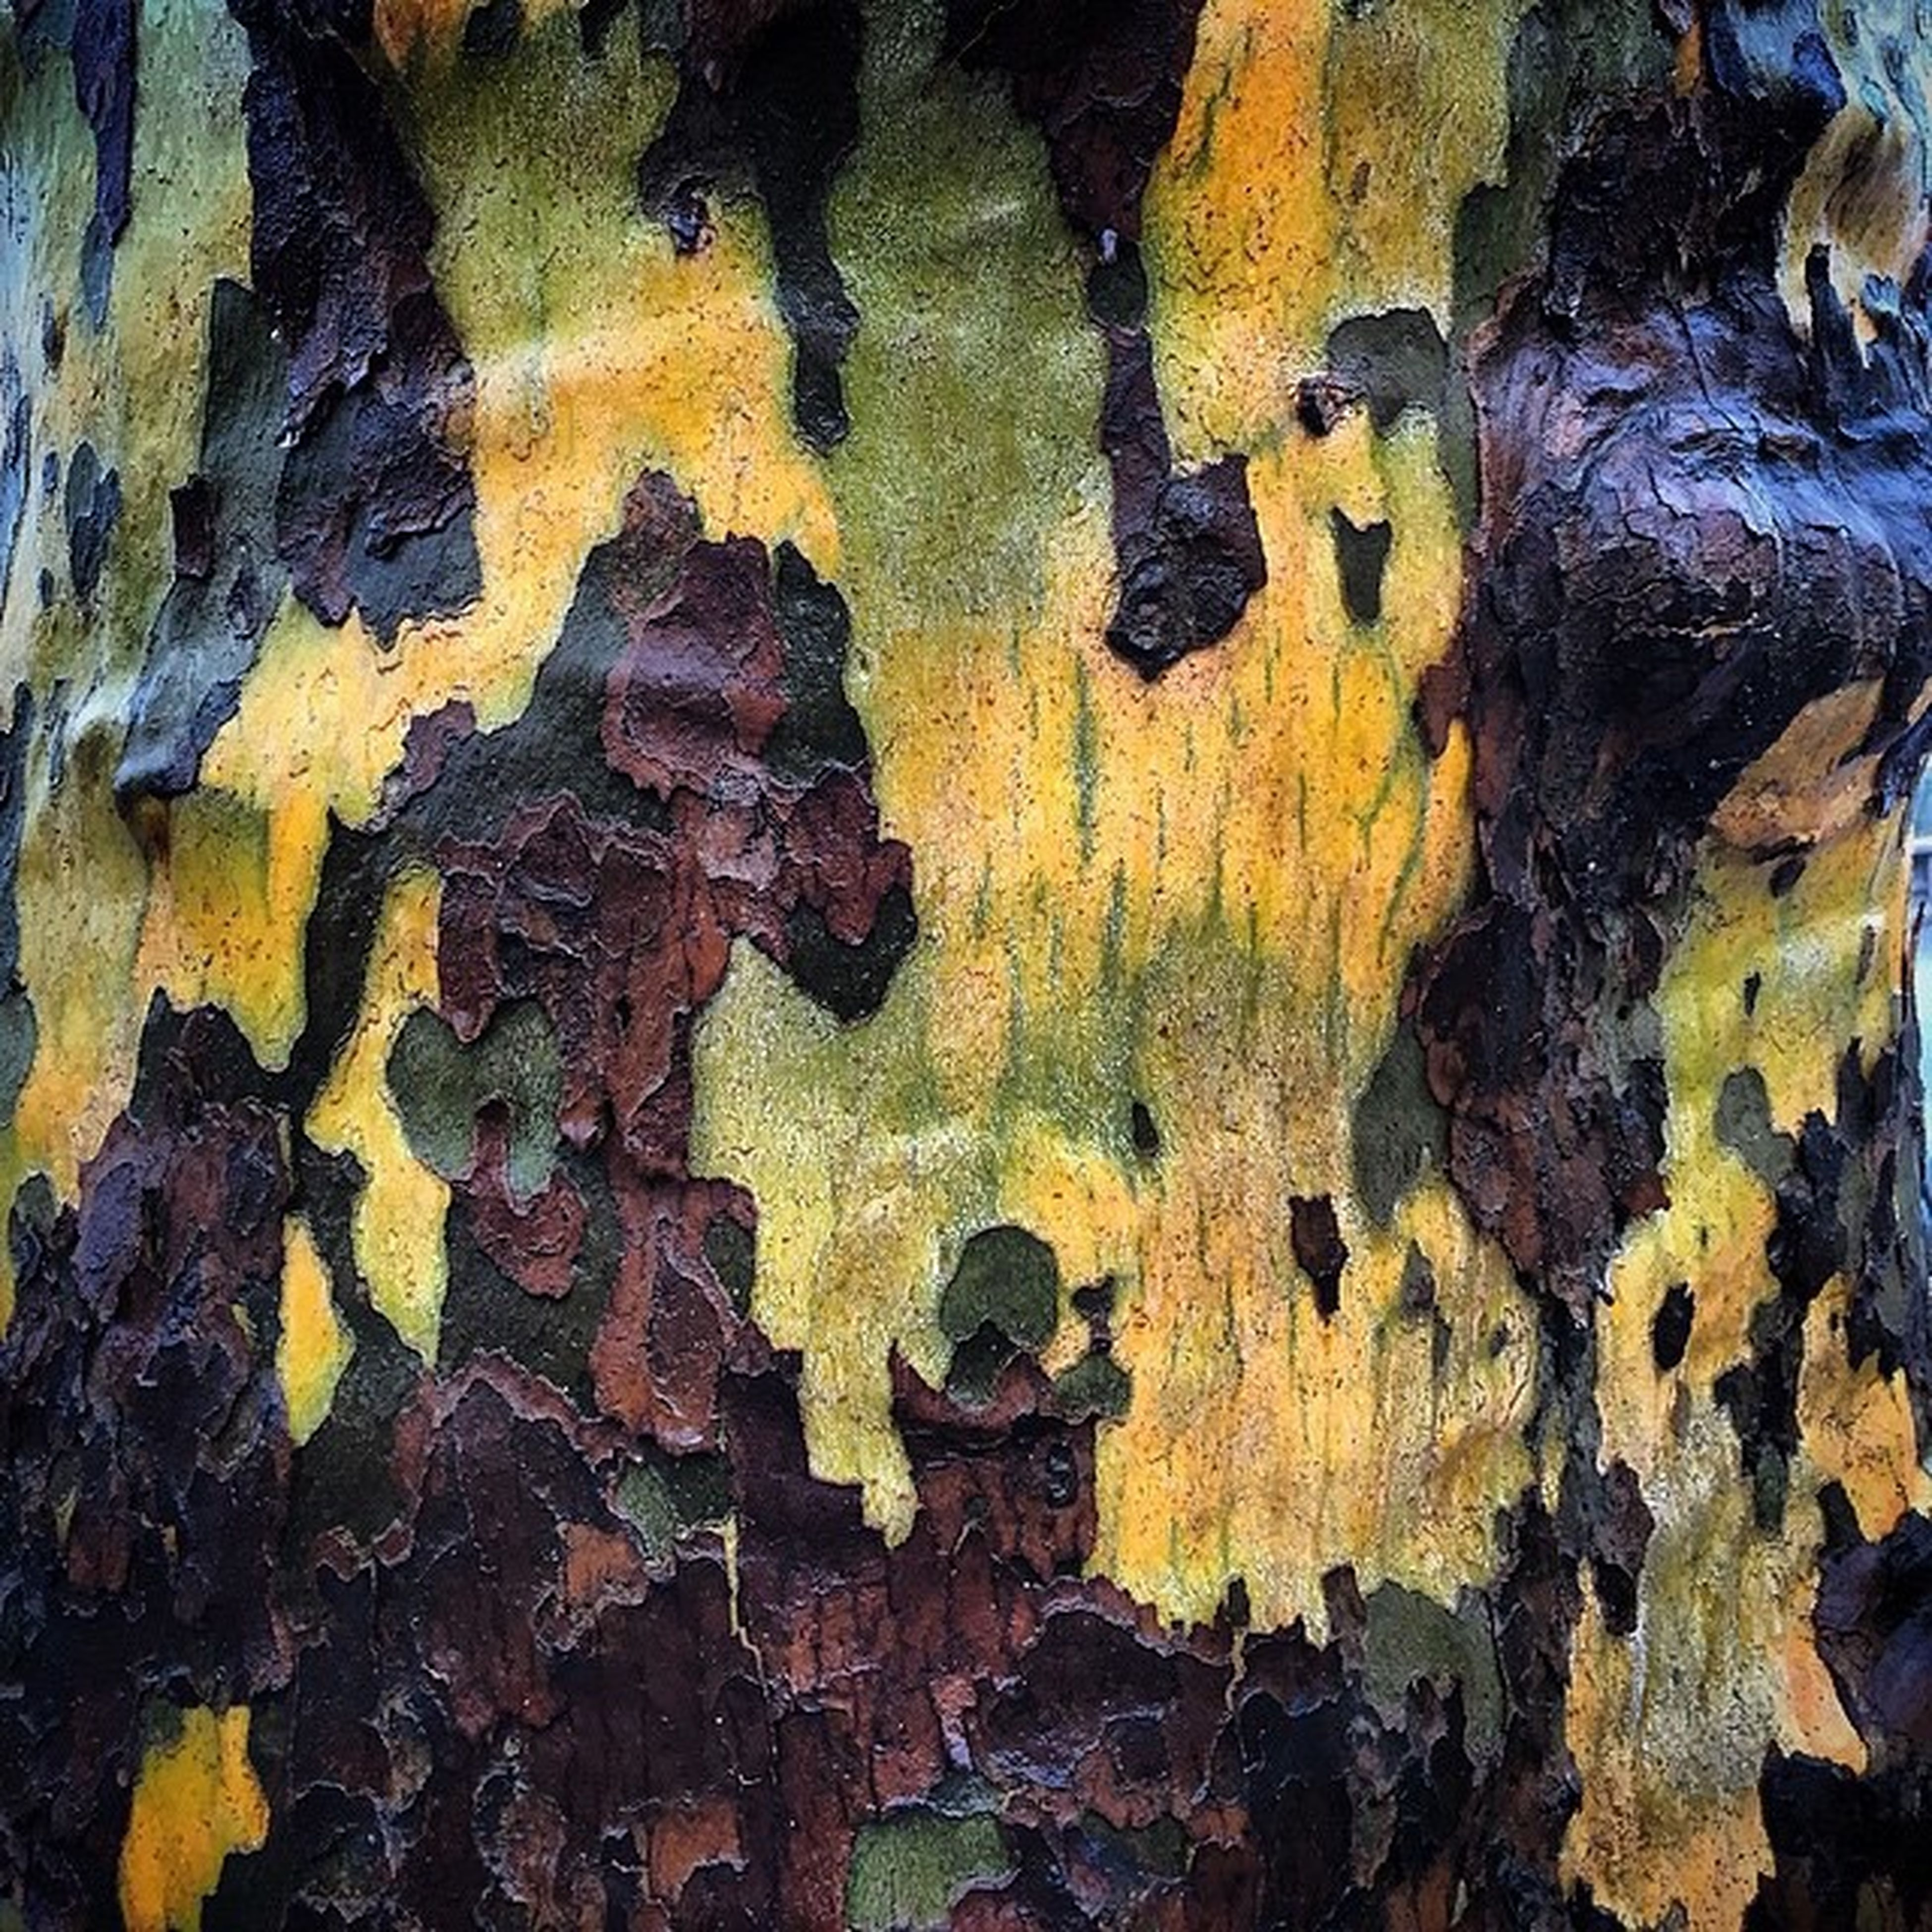 full frame, textured, backgrounds, natural pattern, yellow, nature, close-up, tree trunk, rough, no people, high angle view, outdoors, pattern, beauty in nature, day, autumn, tranquility, bark, rock - object, wood - material